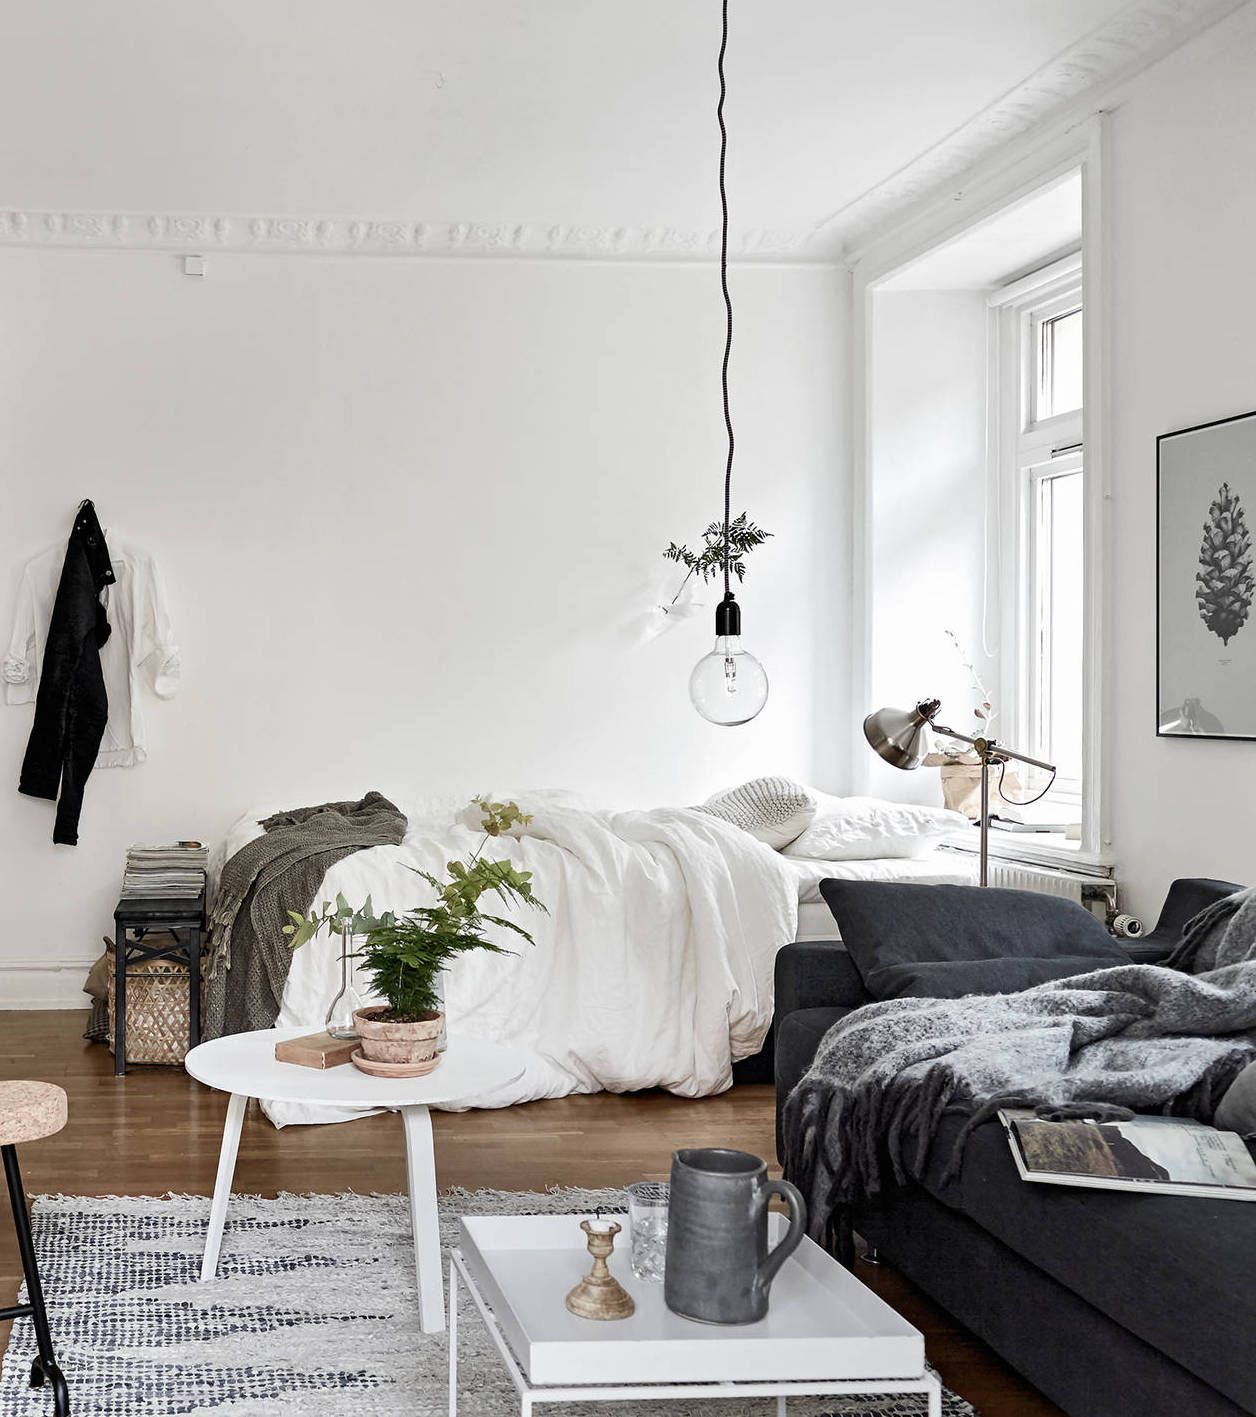 Cozy one room flat | One room flat, Apartment interior ...